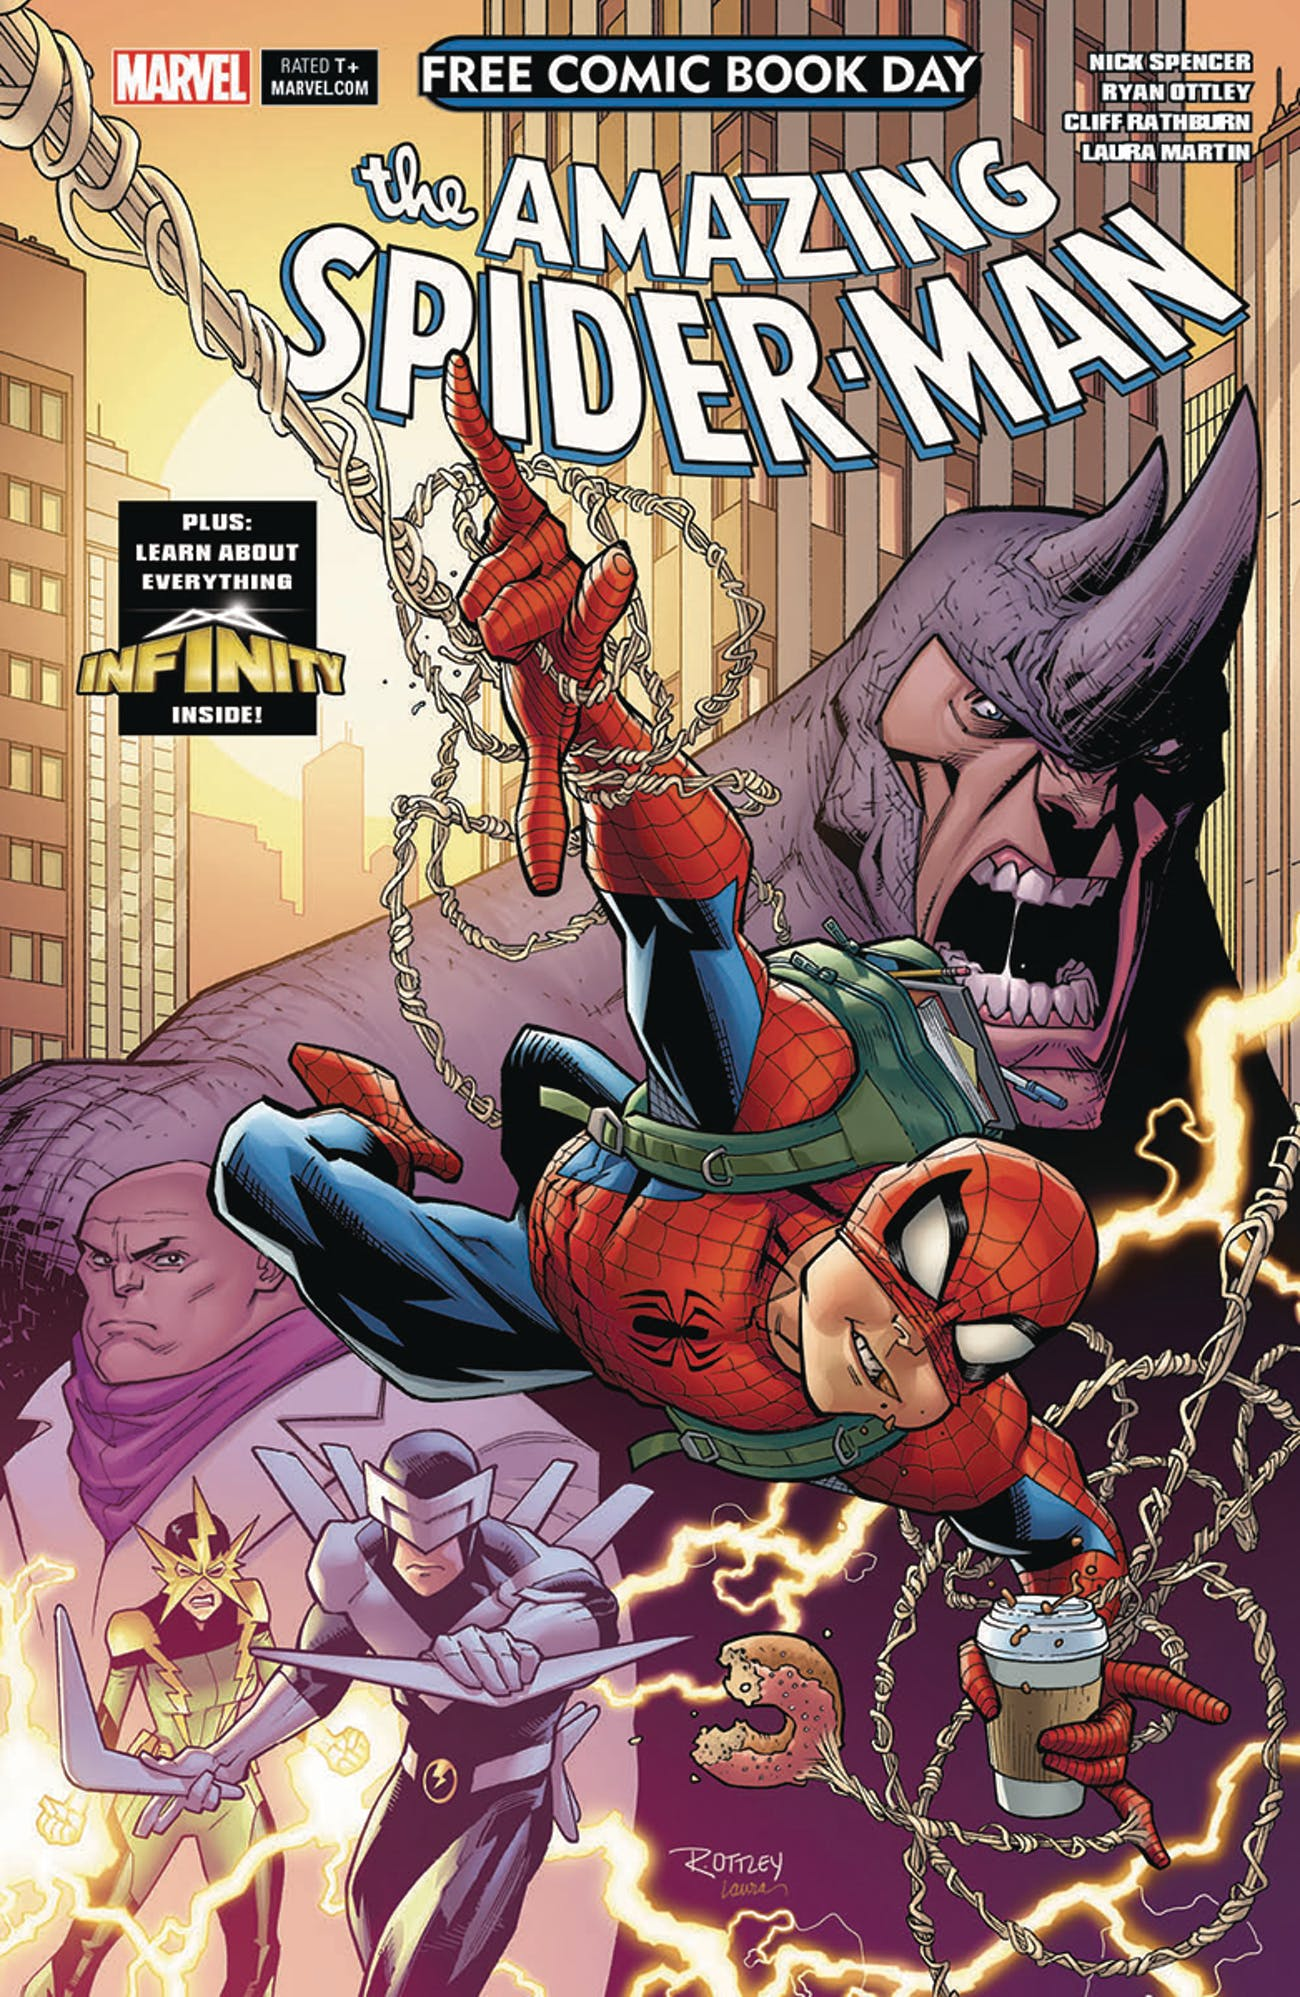 amazing spider-man free comic book day